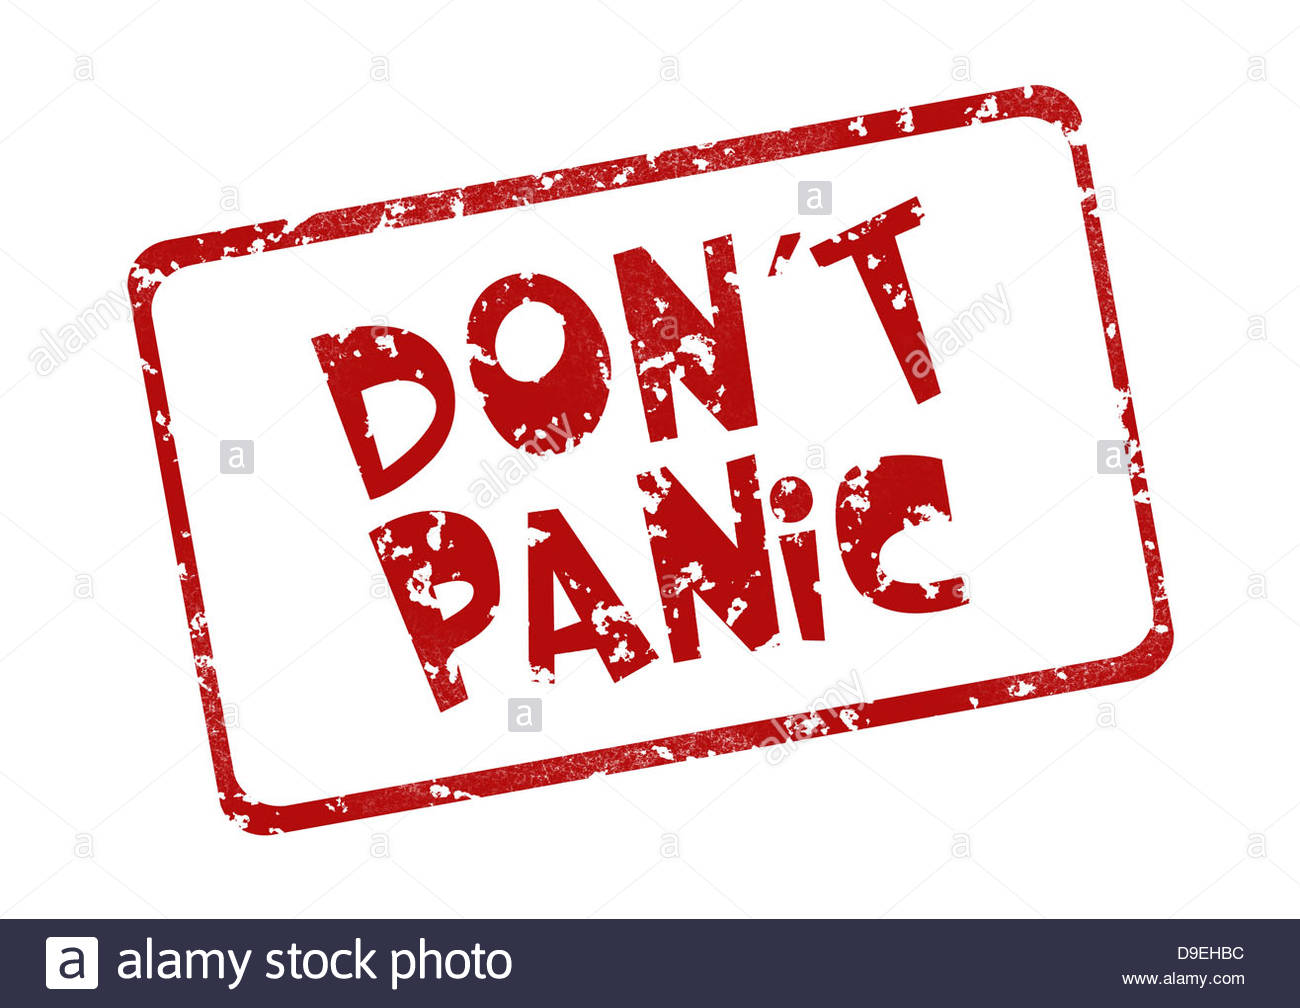 Stamp Panic Fear Anxiety Excitement Scare Stock Photo, Royalty.